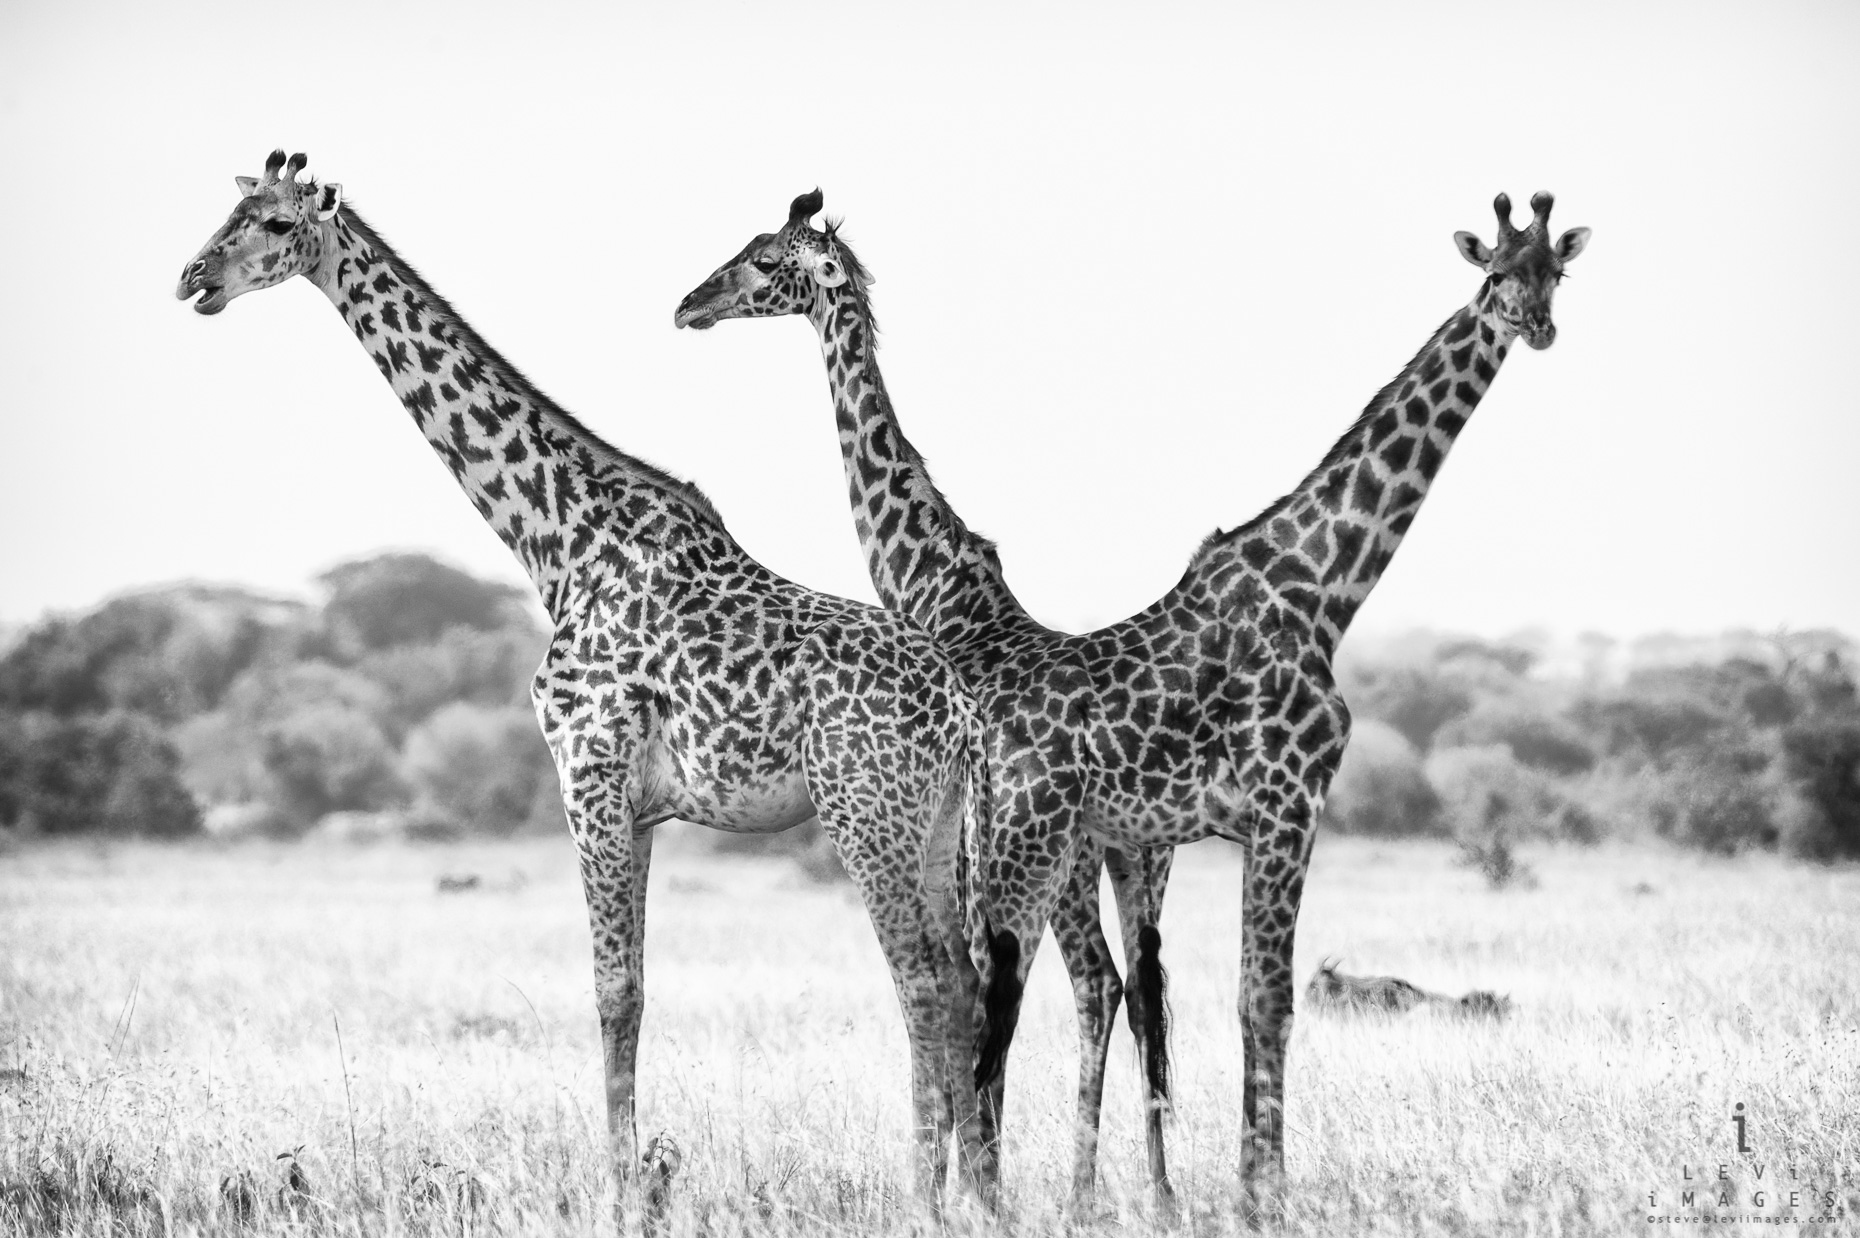 Three giraffes (Giraffa camelopardalis) in black-and-white, Africa